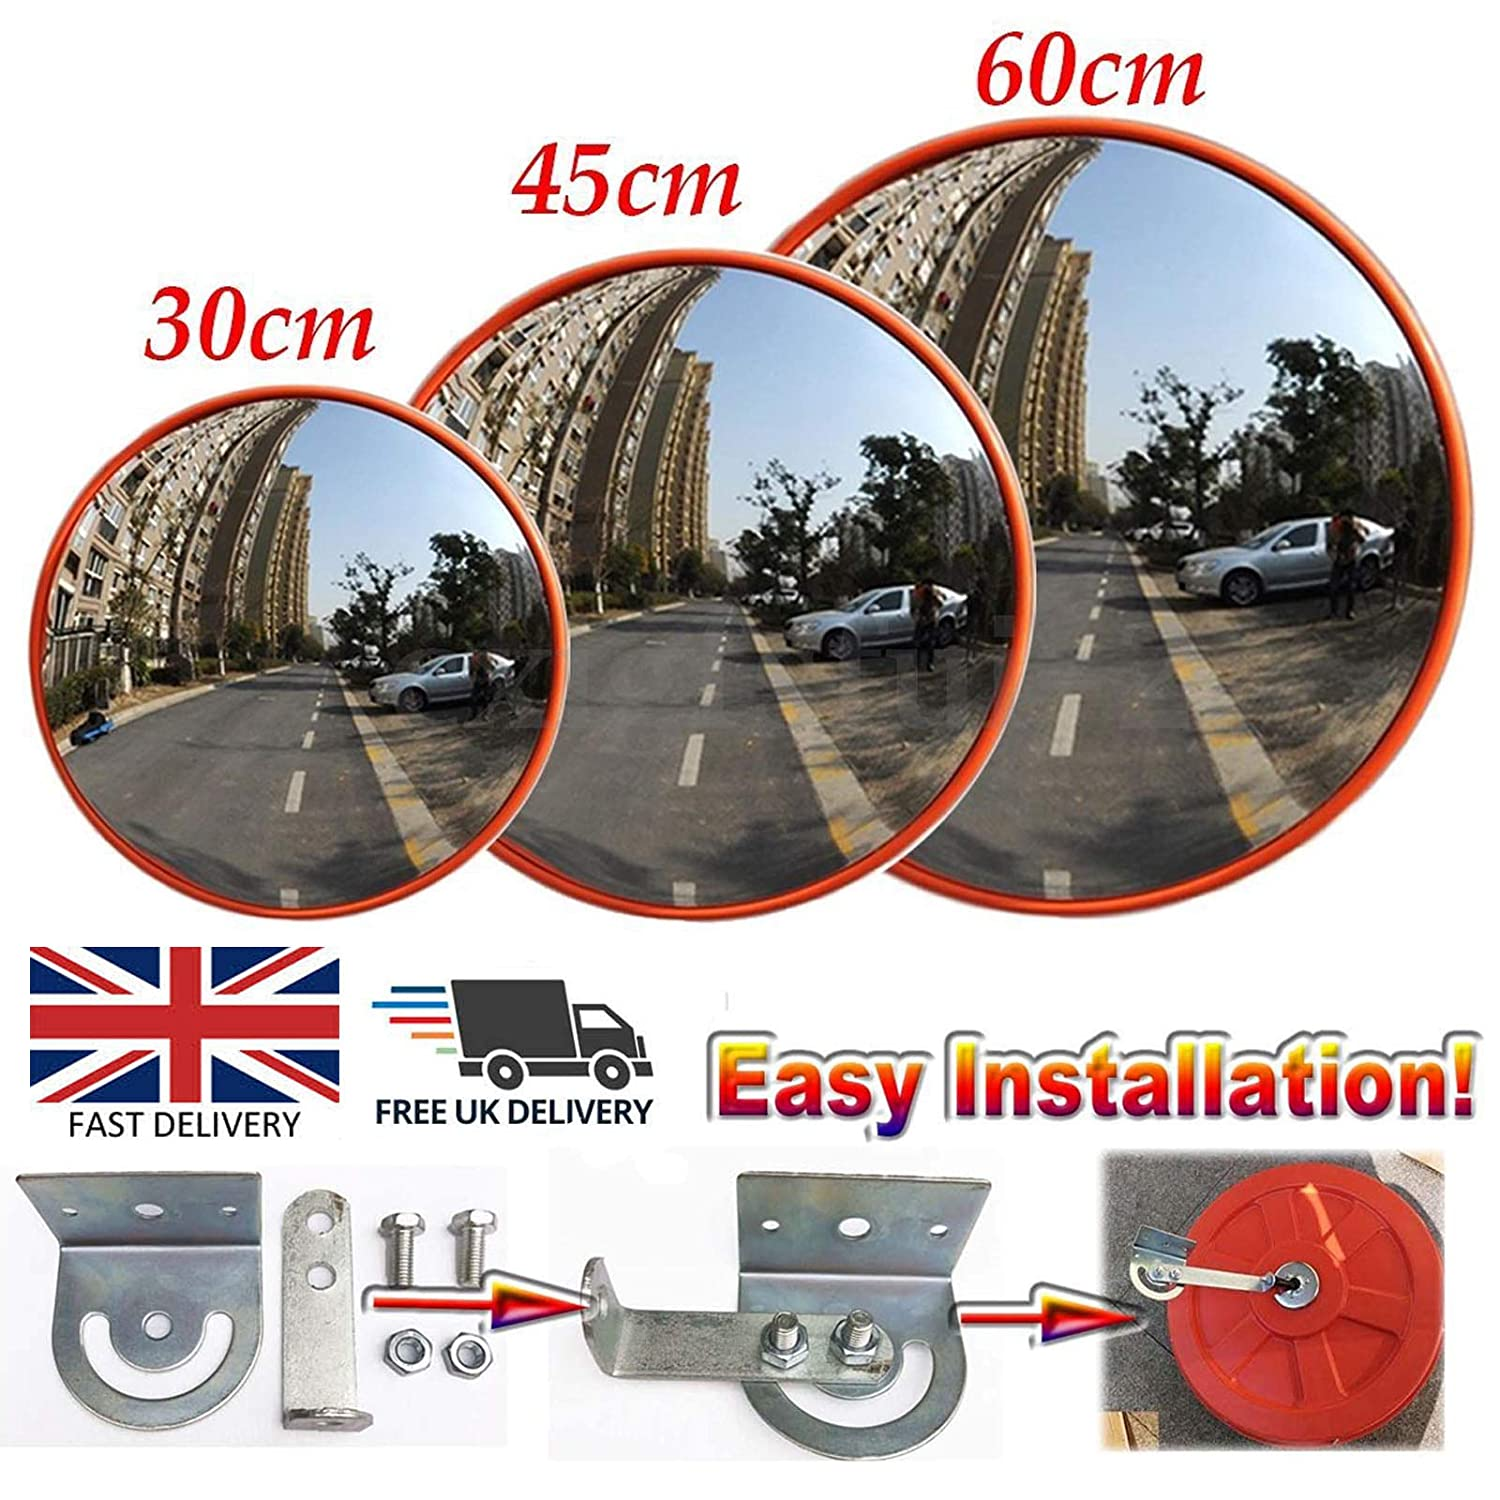 Driveway Traffic Mirror 130 Degree Wide Angle Blind Spot Mirror Convex Security Mirror For Road Safety/Garage/Parking/Shop Security/Home Driveway/Car Park/Hospital/School 30CM